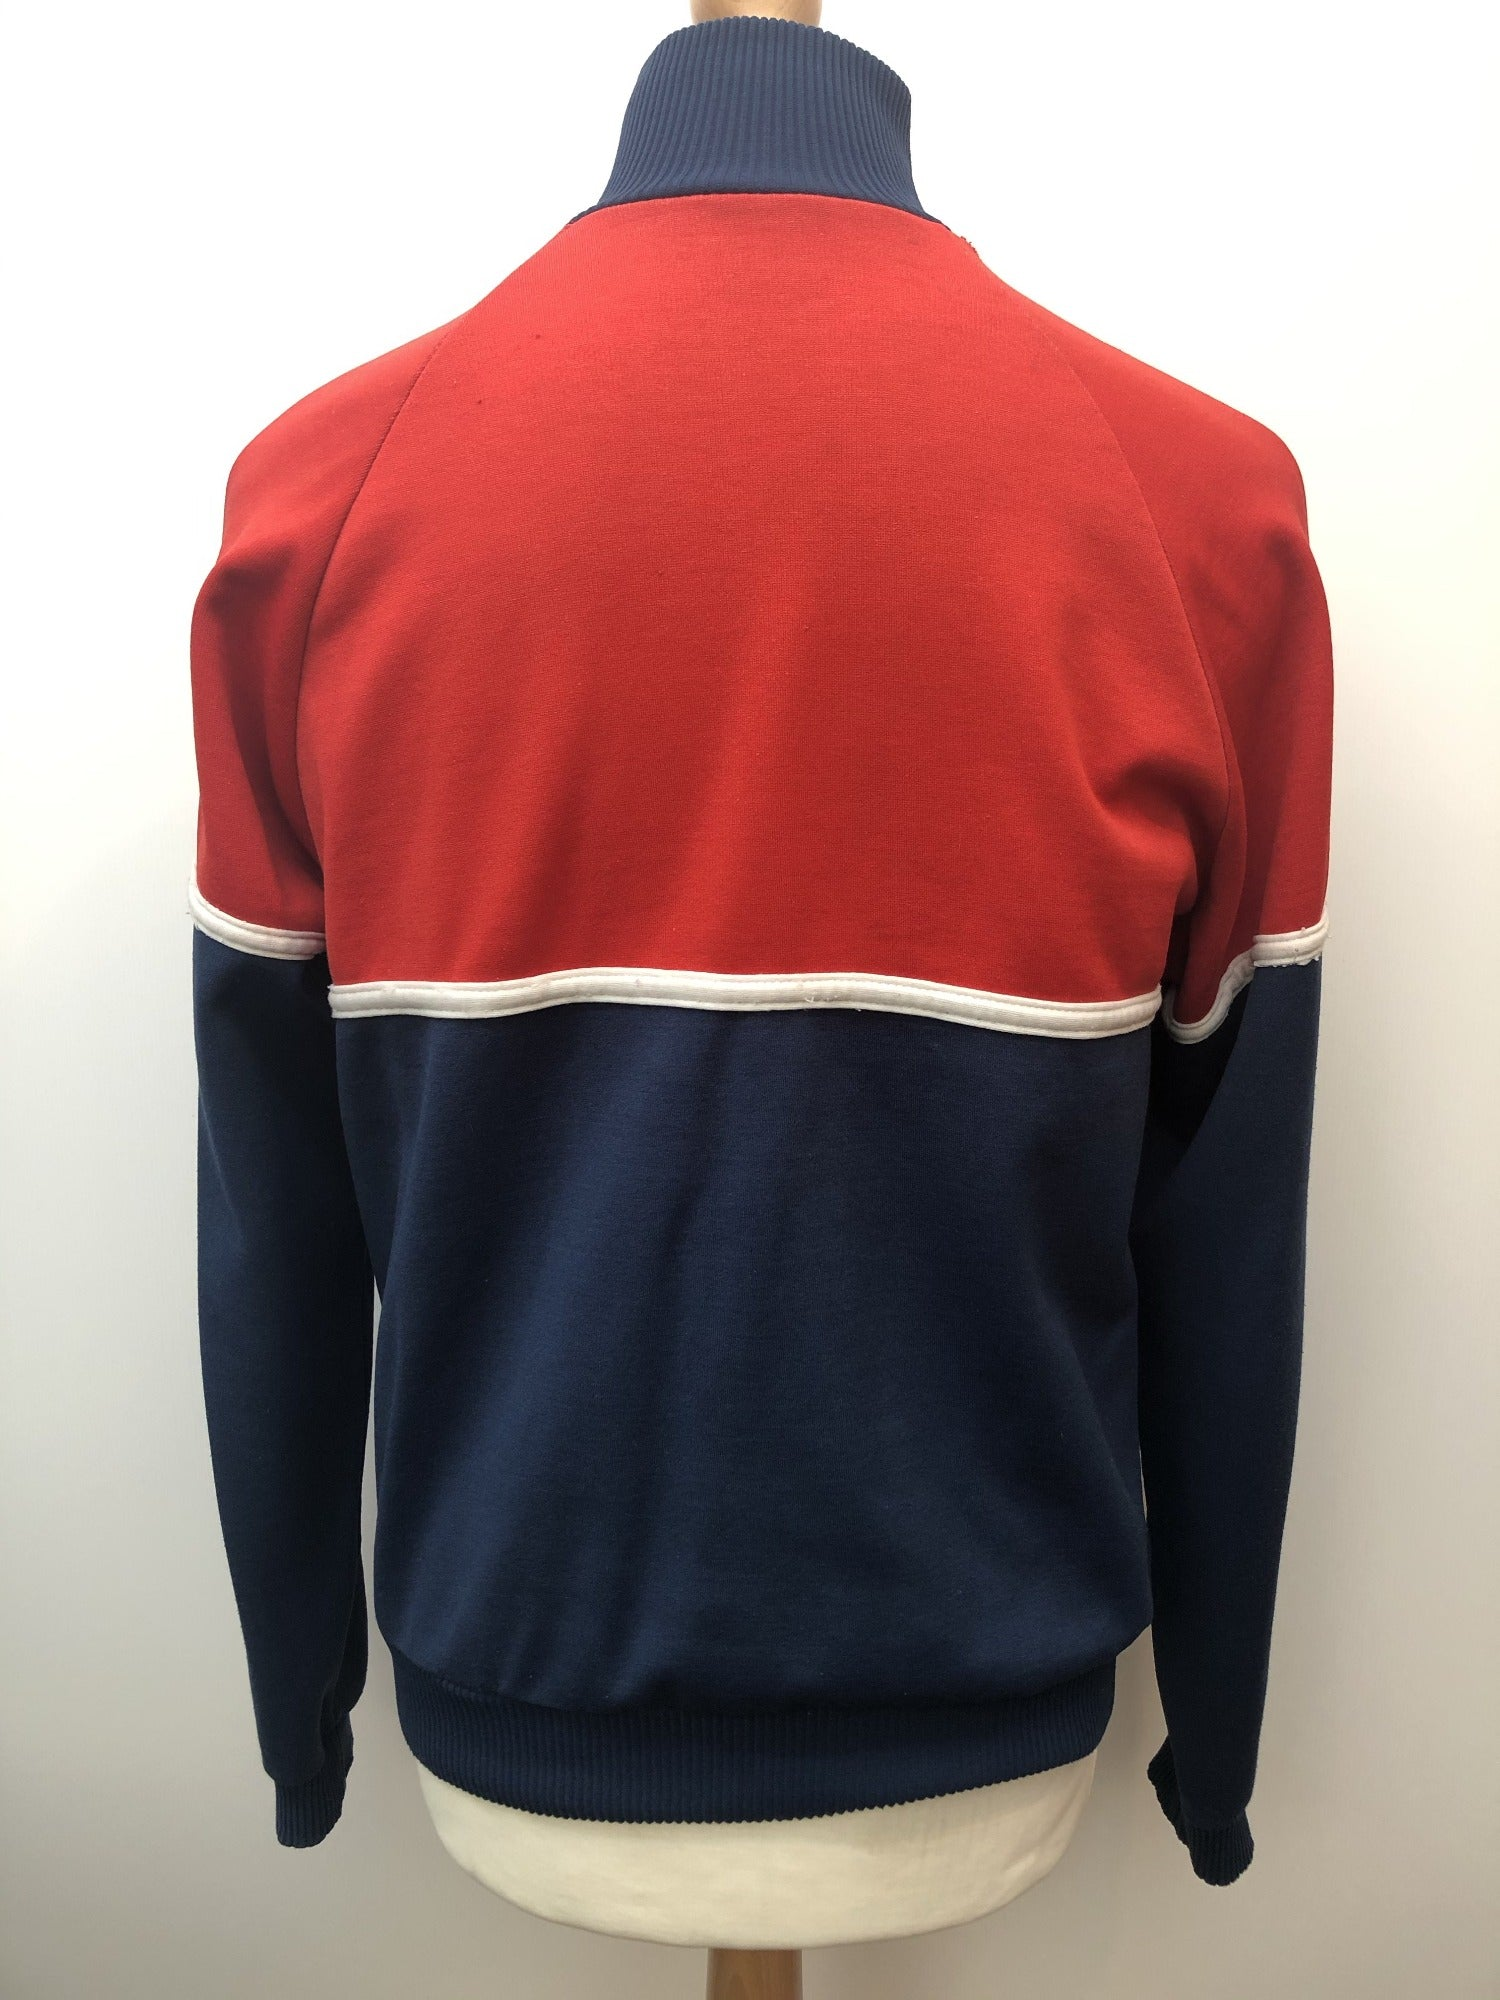 S vintage training Tracksuit Top Tracksuit track top retro red Navy mens logo Jacket blue adidas 3 stripe Urban village vintage